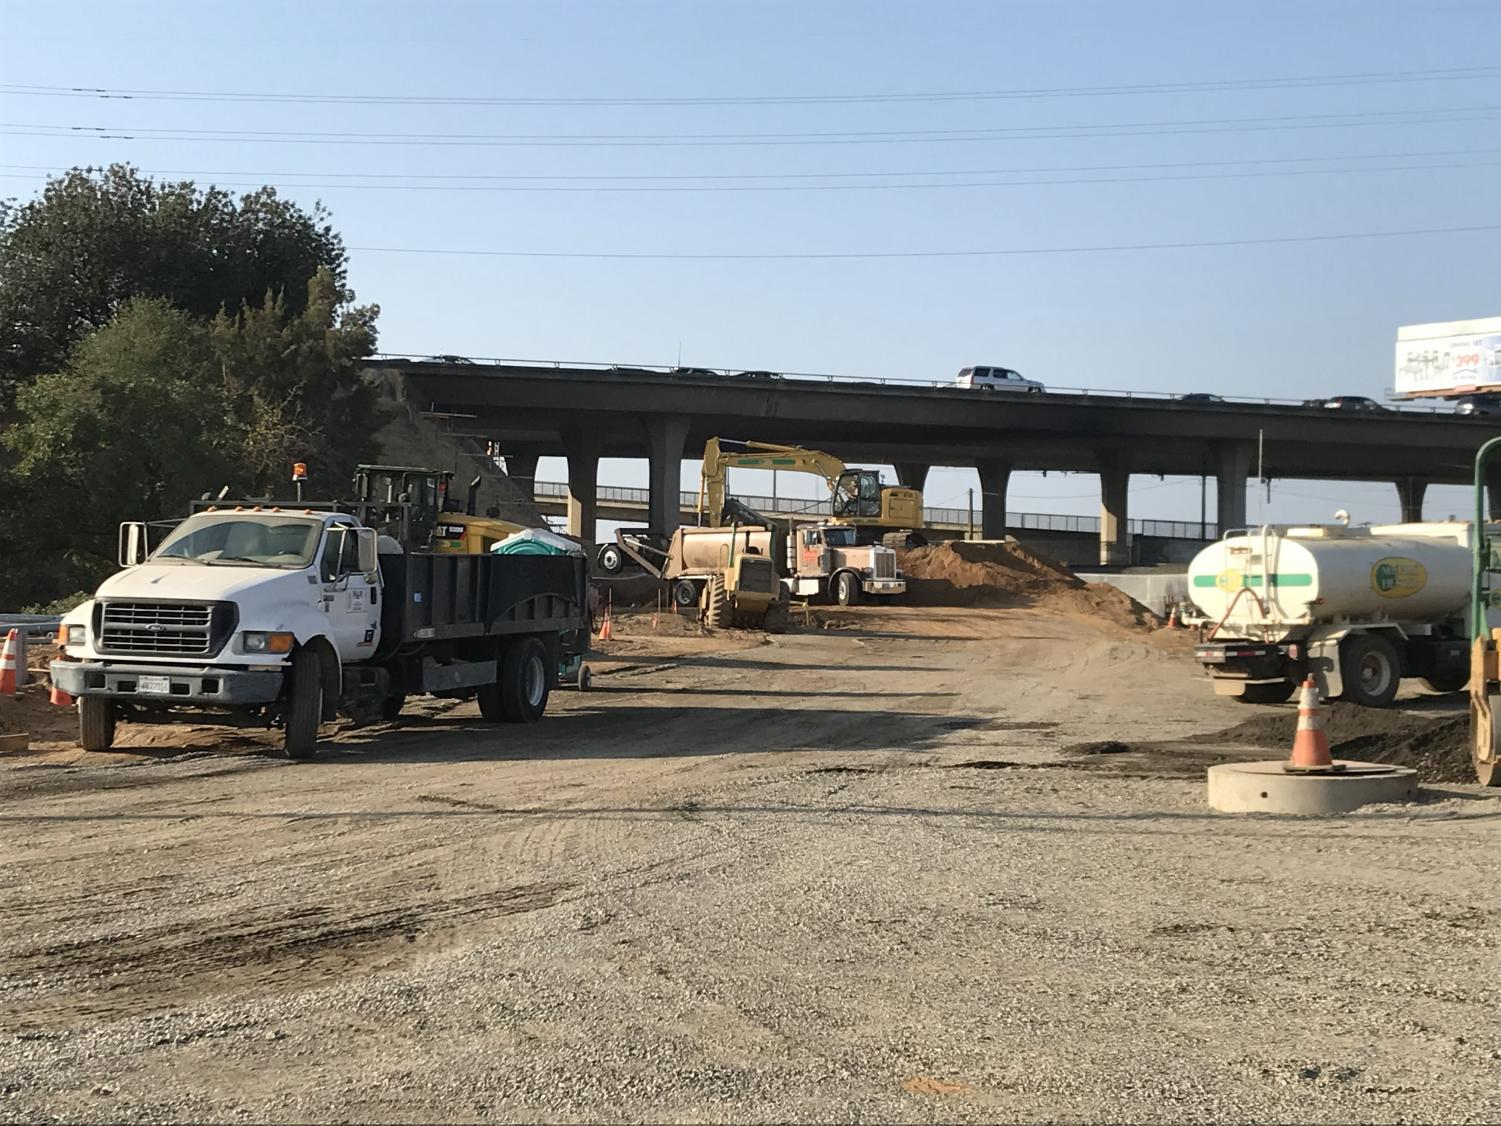 Construction crews works on the Ramona Avenue extension project off of Folsom Boulevard. Two construction projects - the Ramona Avenue extension and the Elvas Avenue road widening project - may cause heavy traffic on Folsom Boulevard through the semester.